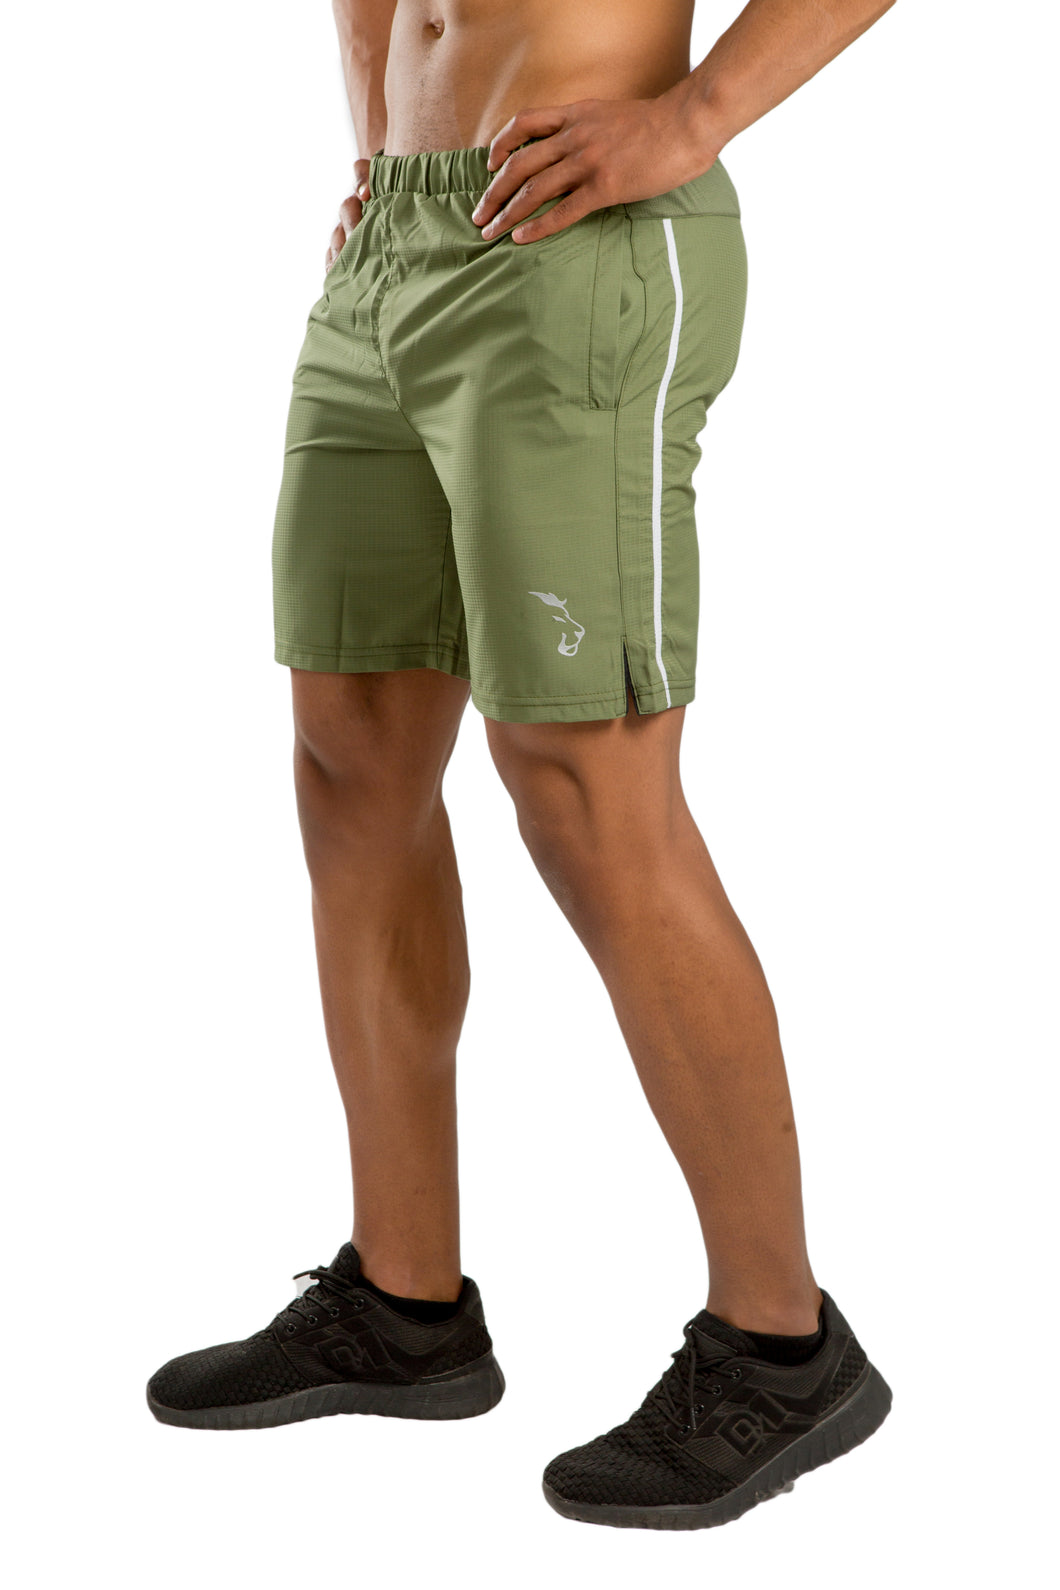 Lionz perforated short - green